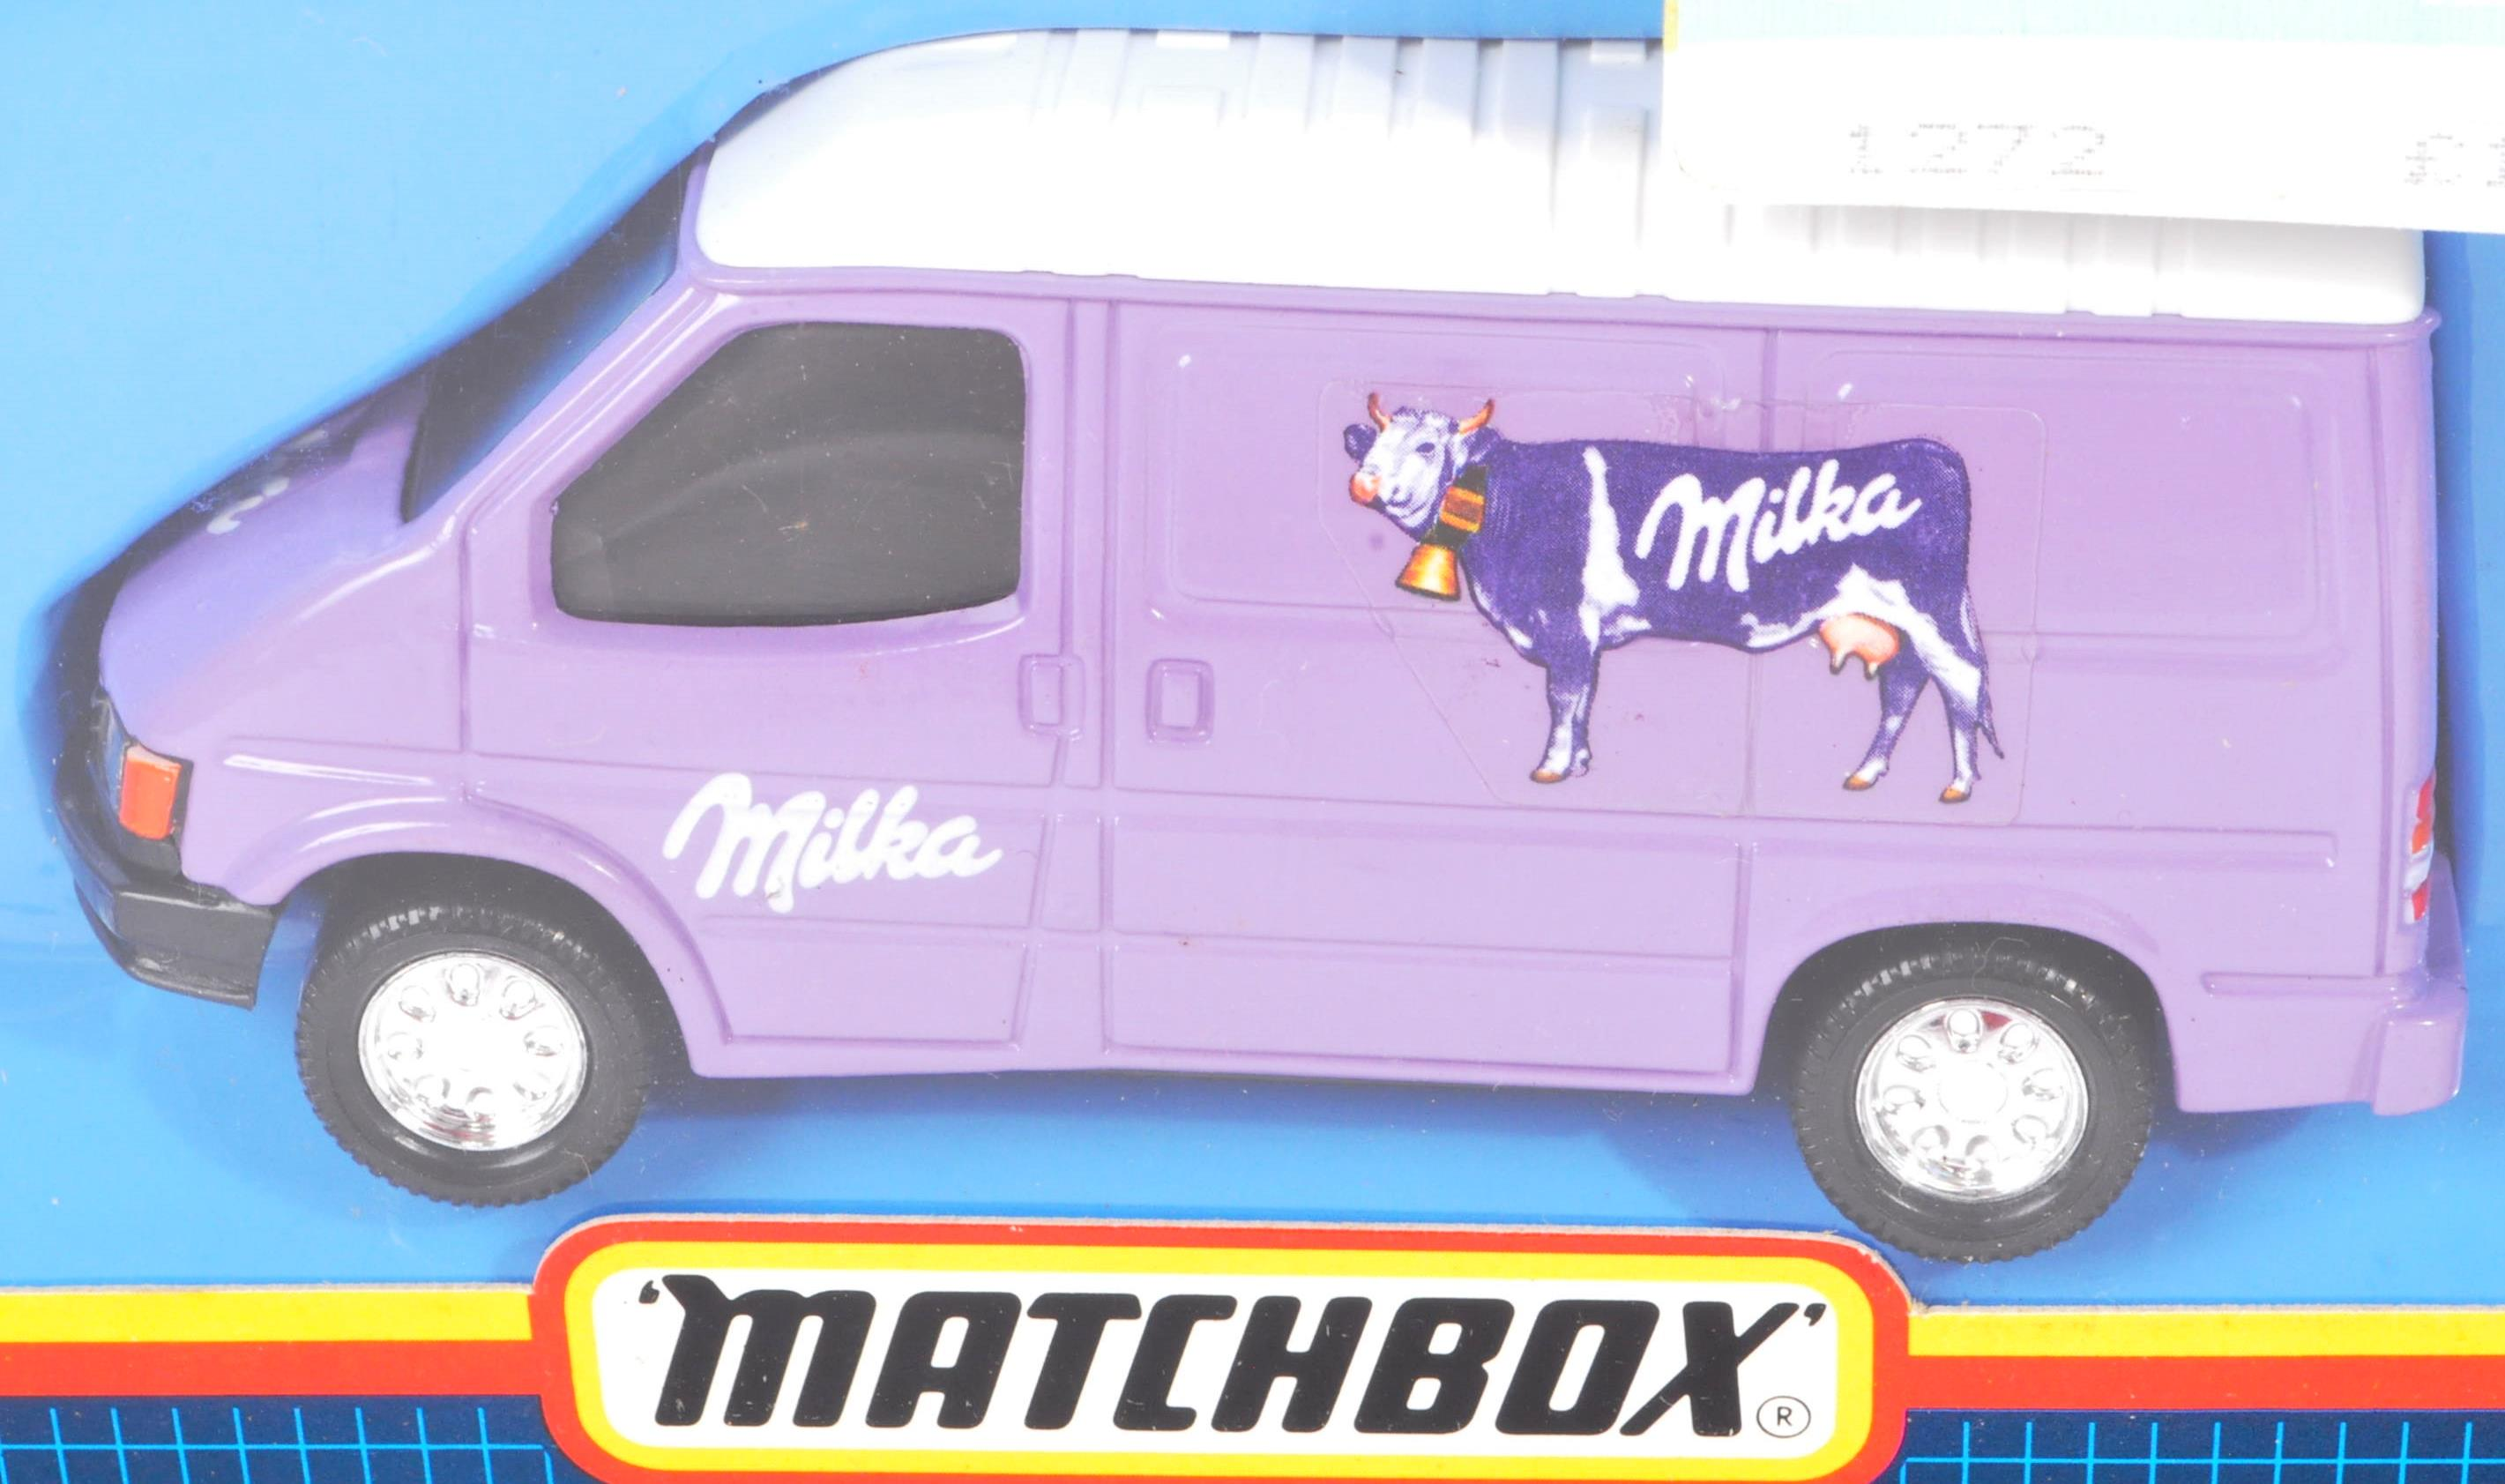 COLLECTION OF VINTAGE MATCHBOX SUPERKINGS DIECAST MODELS - Image 6 of 6